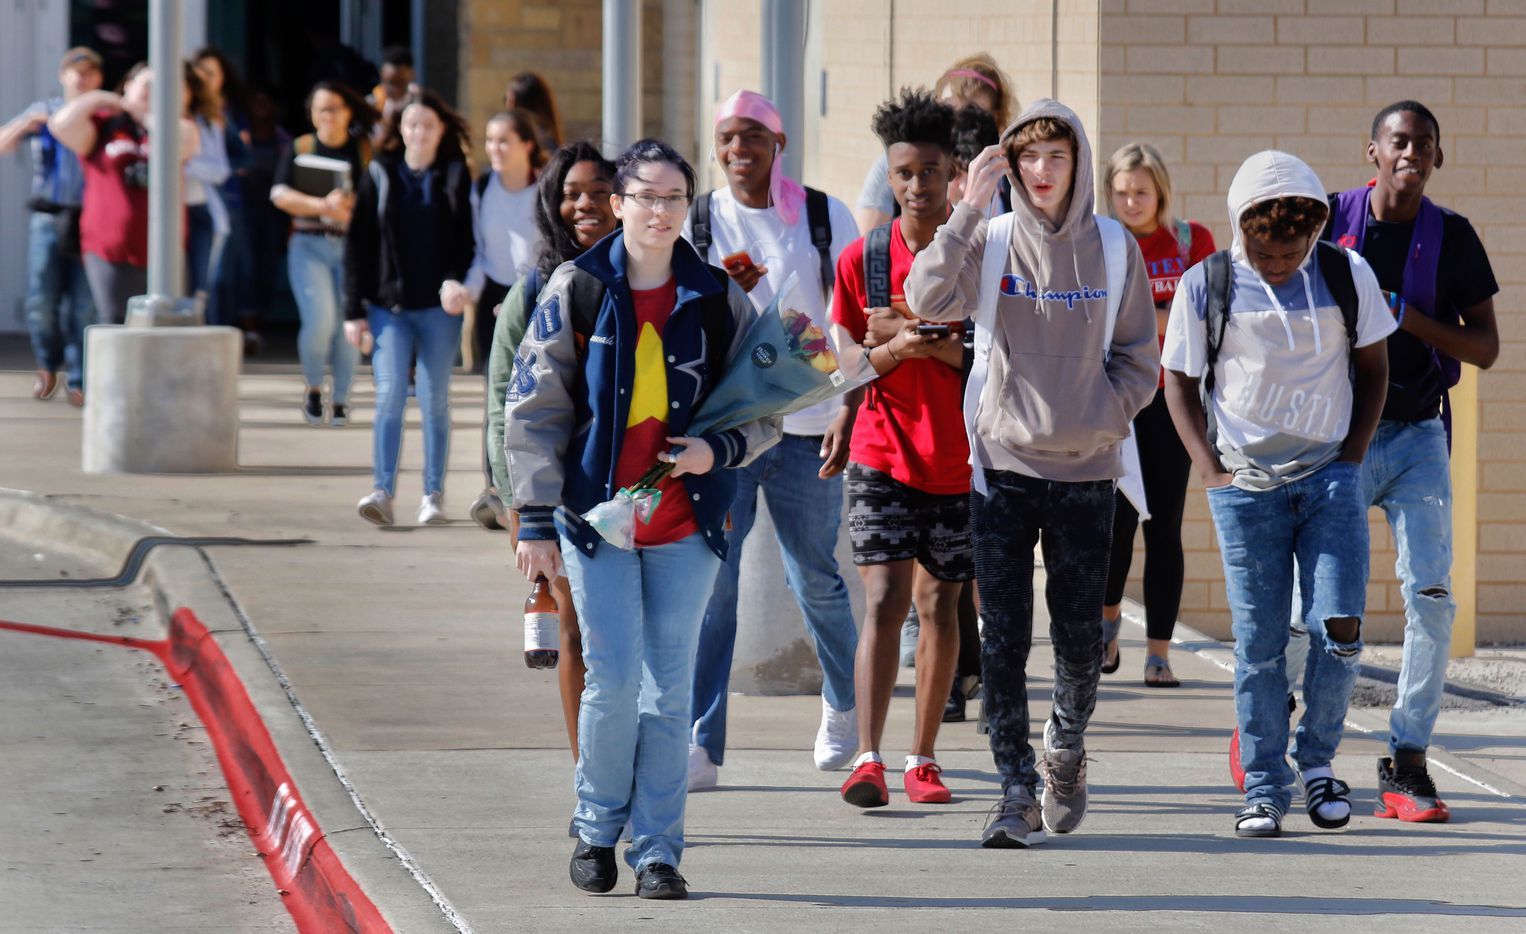 Students at Frisco ISD Lone Star High School participate in the National School Walkout Friday morning April 20, 2018.